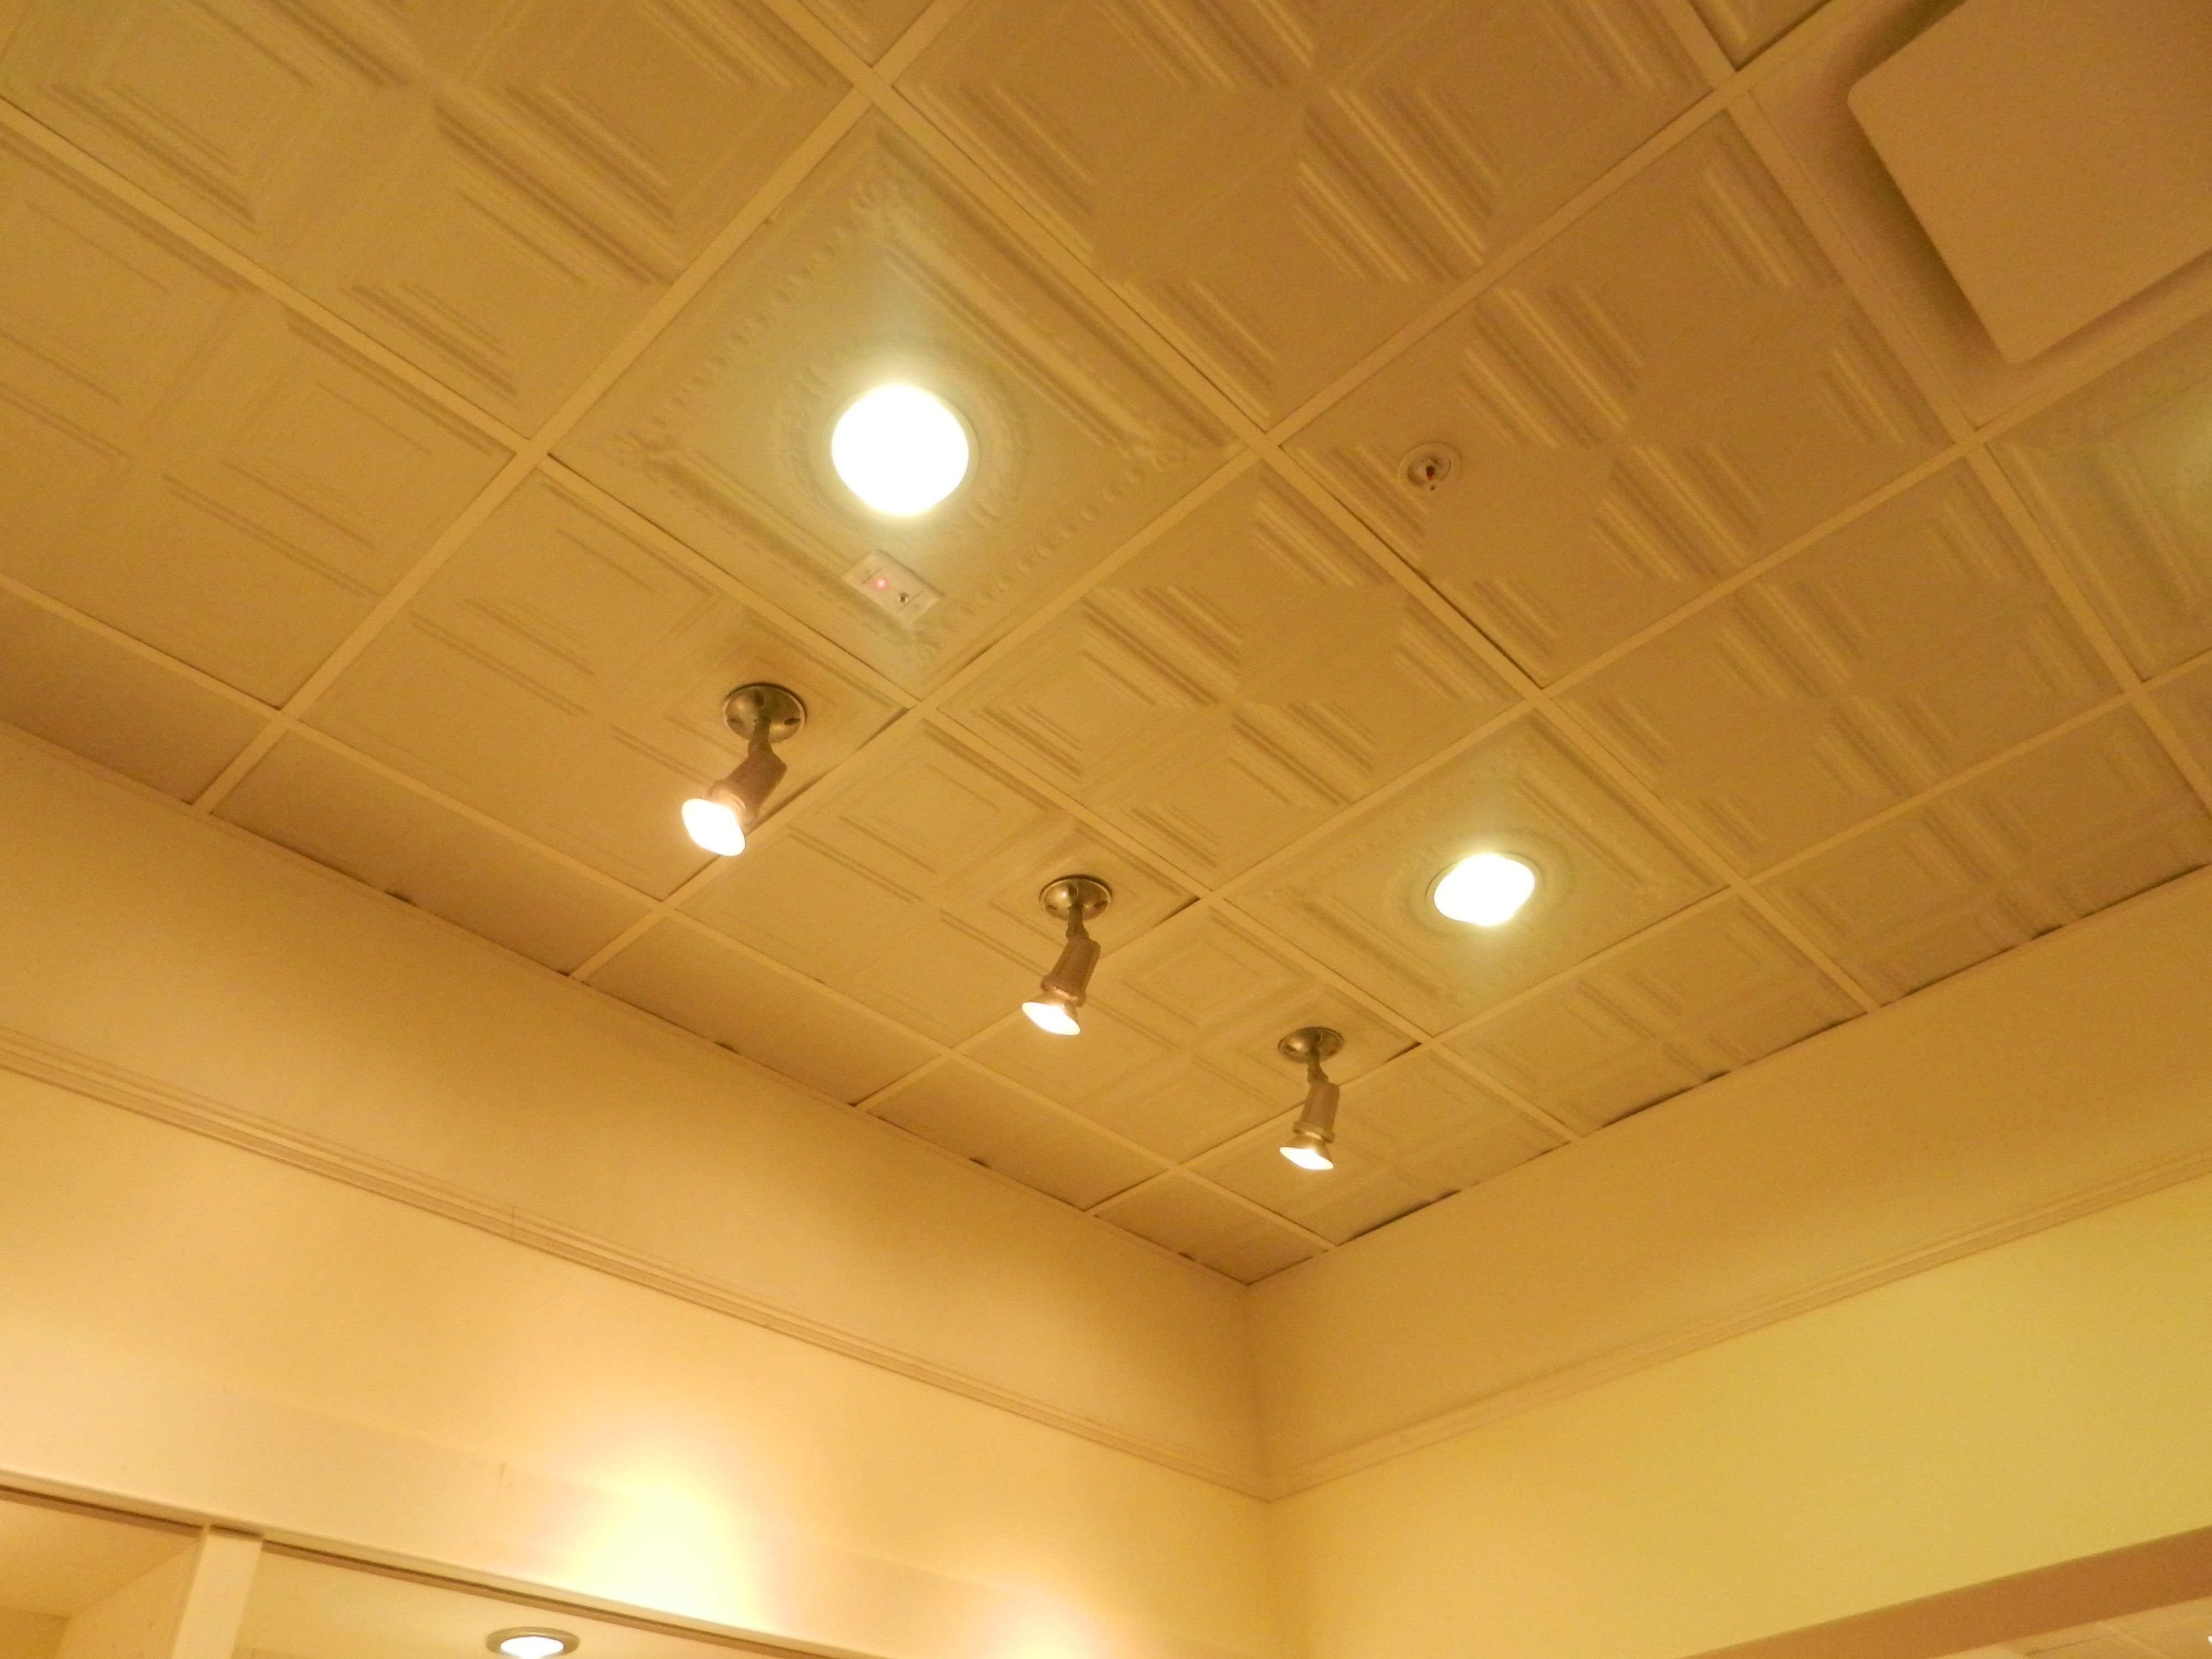 Ceiling tiles with recessed lighting adjustable down